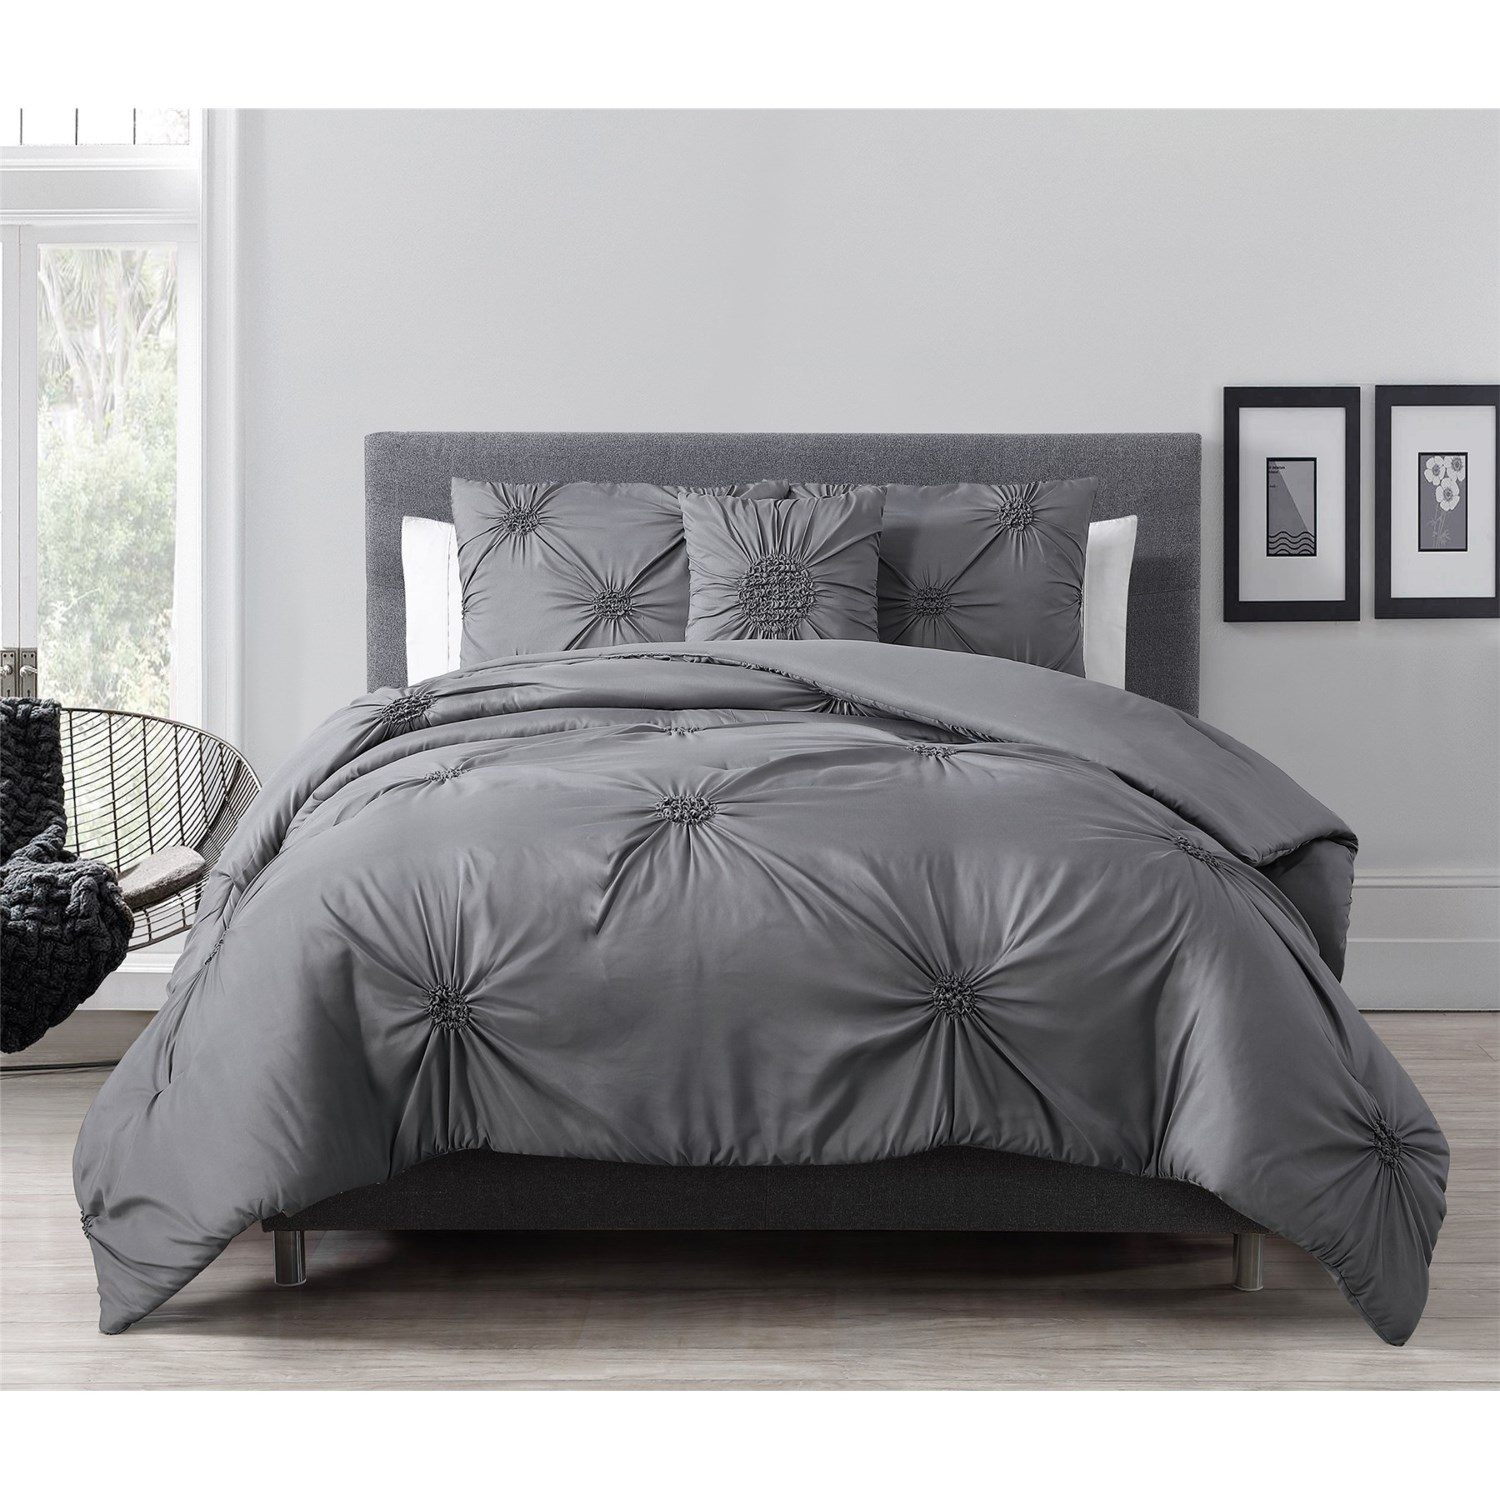 S l home fashions paige comforter set king 4 piece for Home fashion